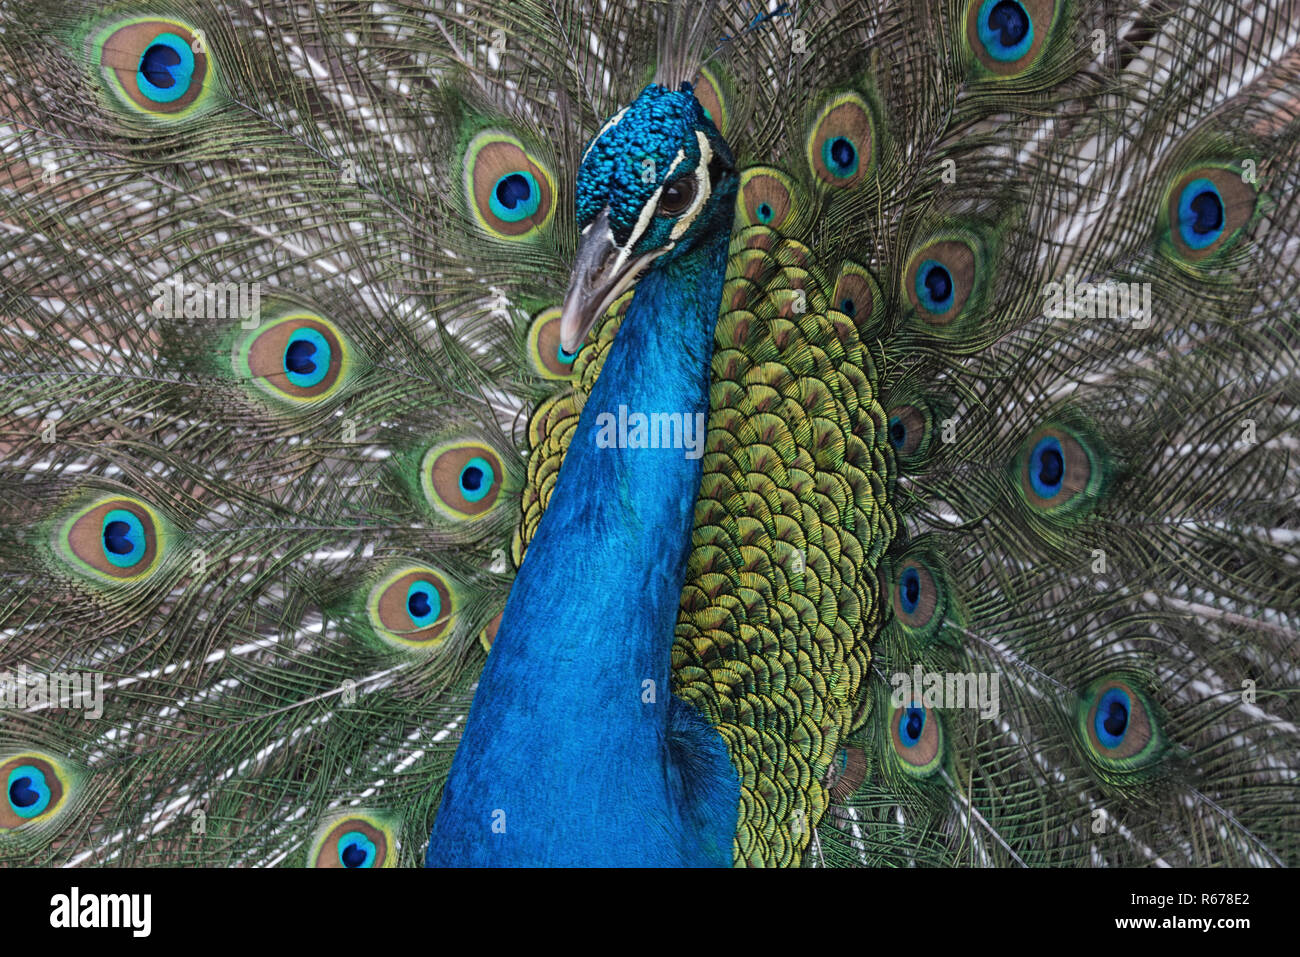 Portrait of an Indian peafowl or the blue peafowl - Stock Image